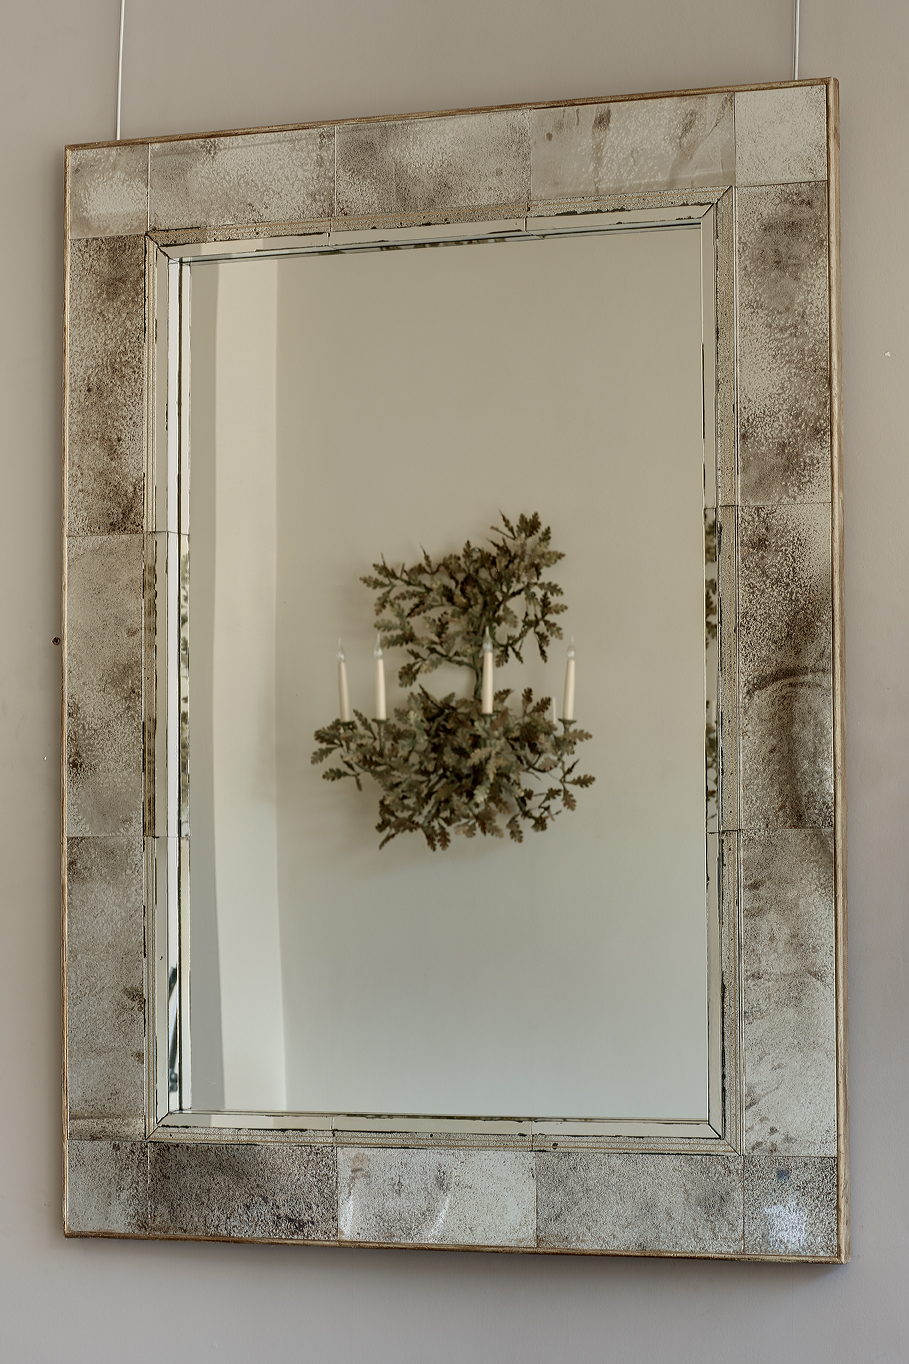 Sectional panelled mirror.